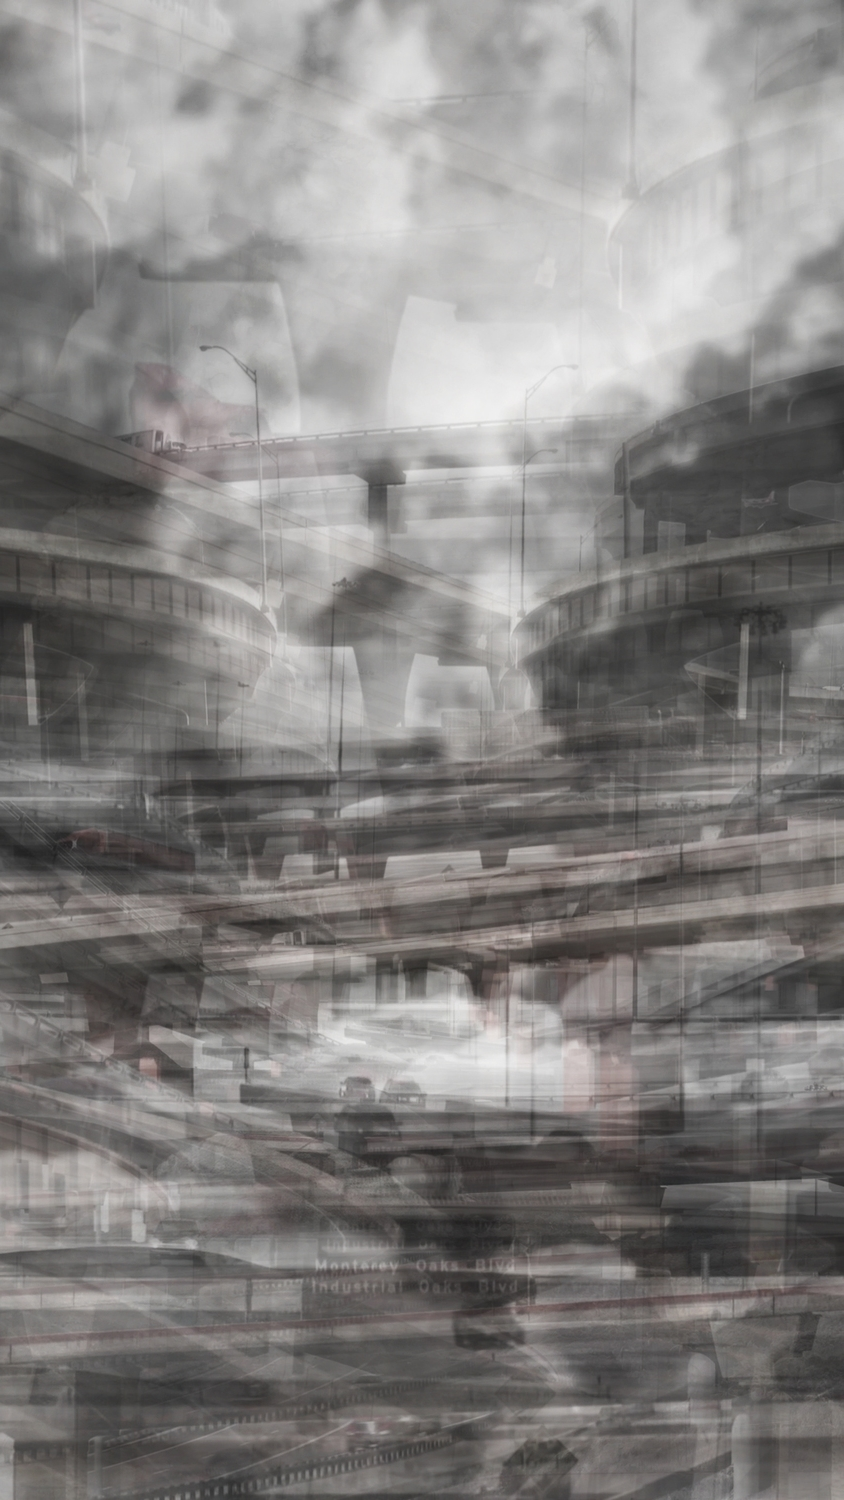 Monuments 1,766 frames. 2013   Inkjet Print Digital Image from collapsed video  27 x 15 inches  Edition of 20  unframed